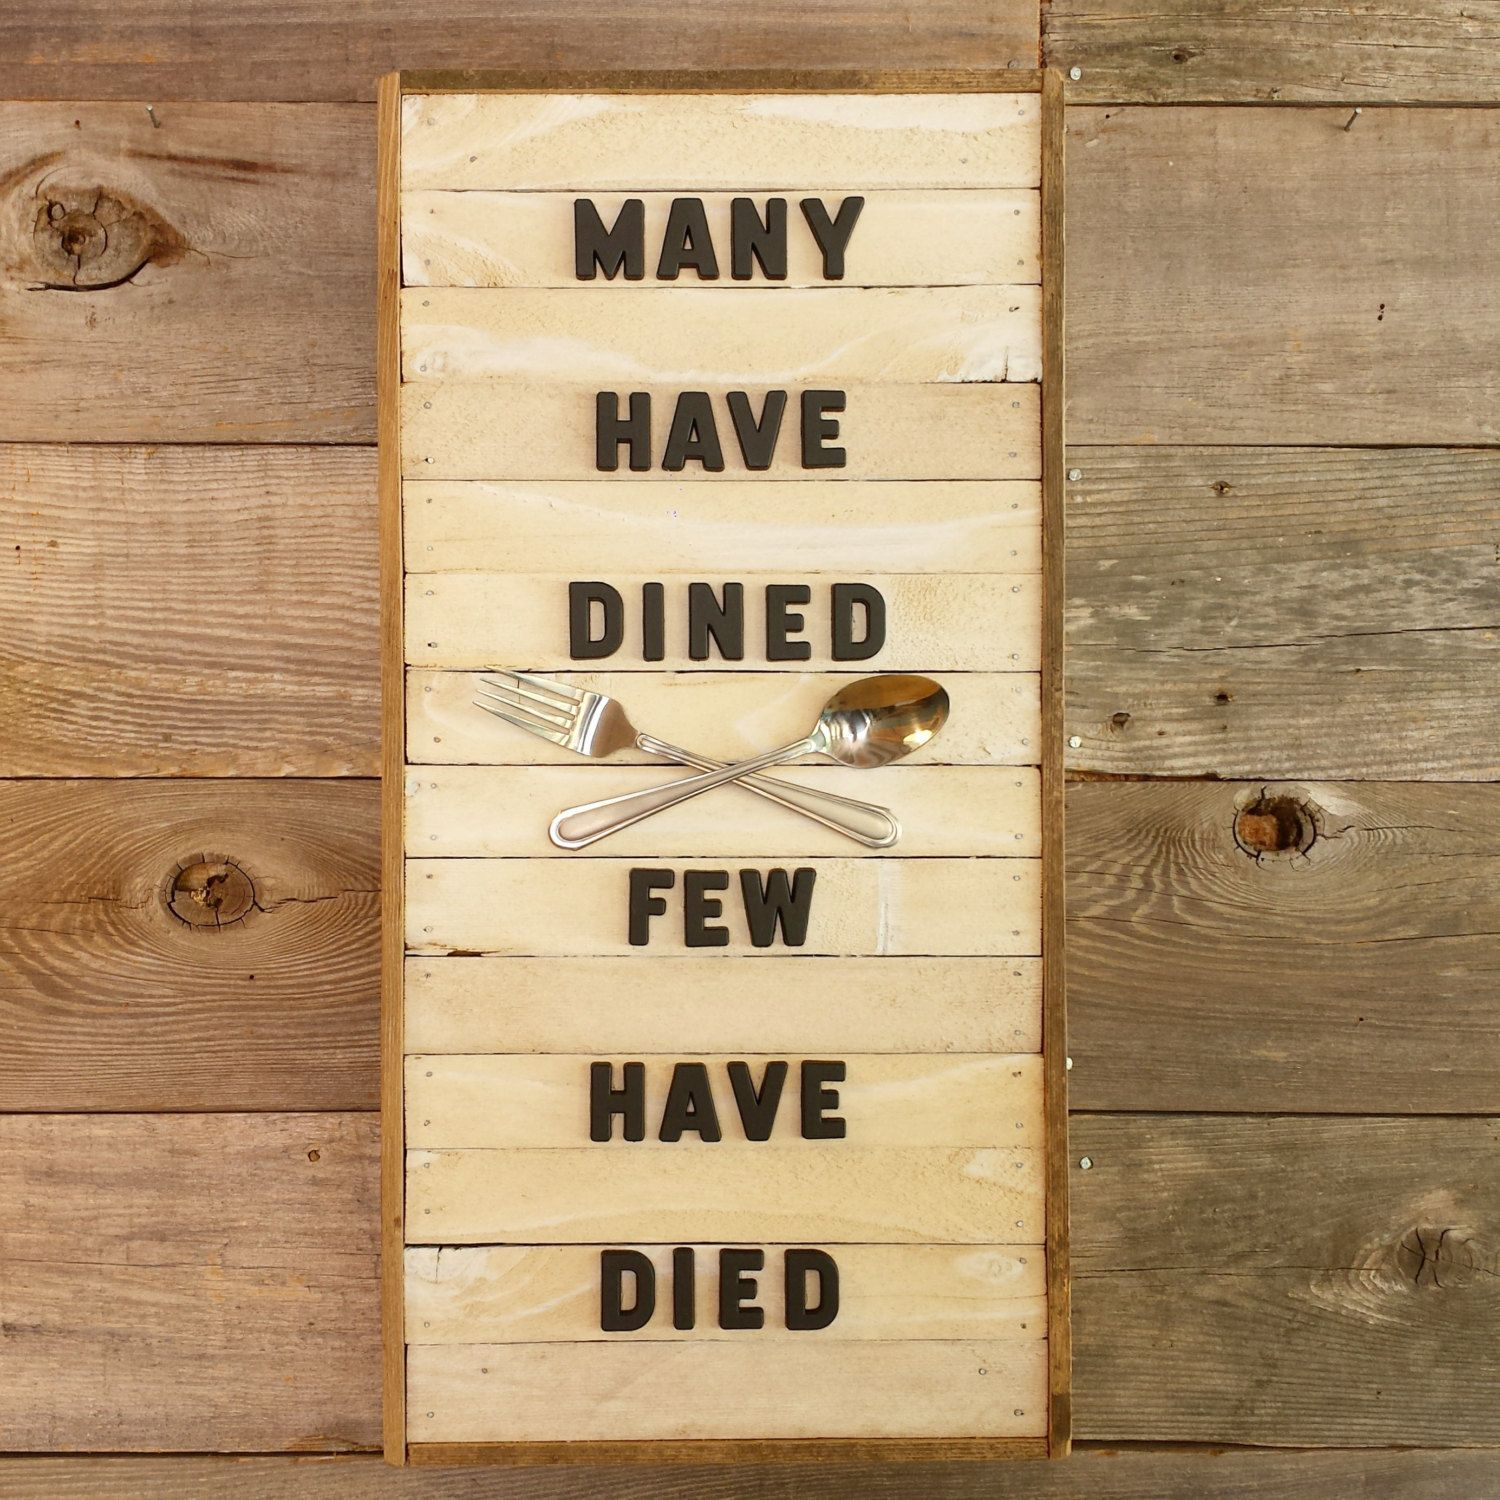 MANY HAVE DINED | Rustic Vintage Sign | Wall Art Decor by ...